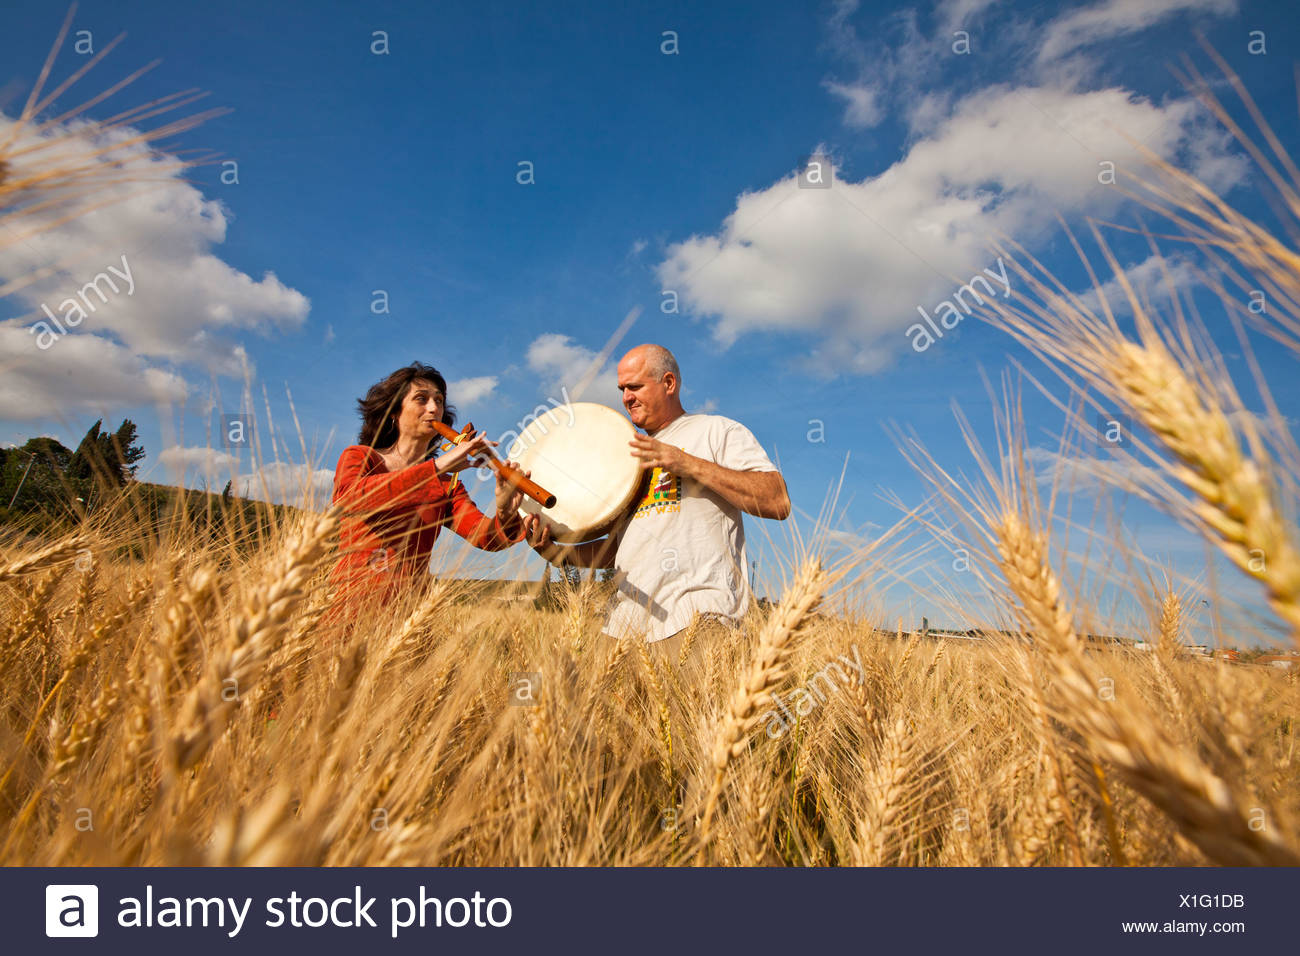 Shavuot (weeks) Jewish festival of grain harvest and agricultural products  - Stock Image